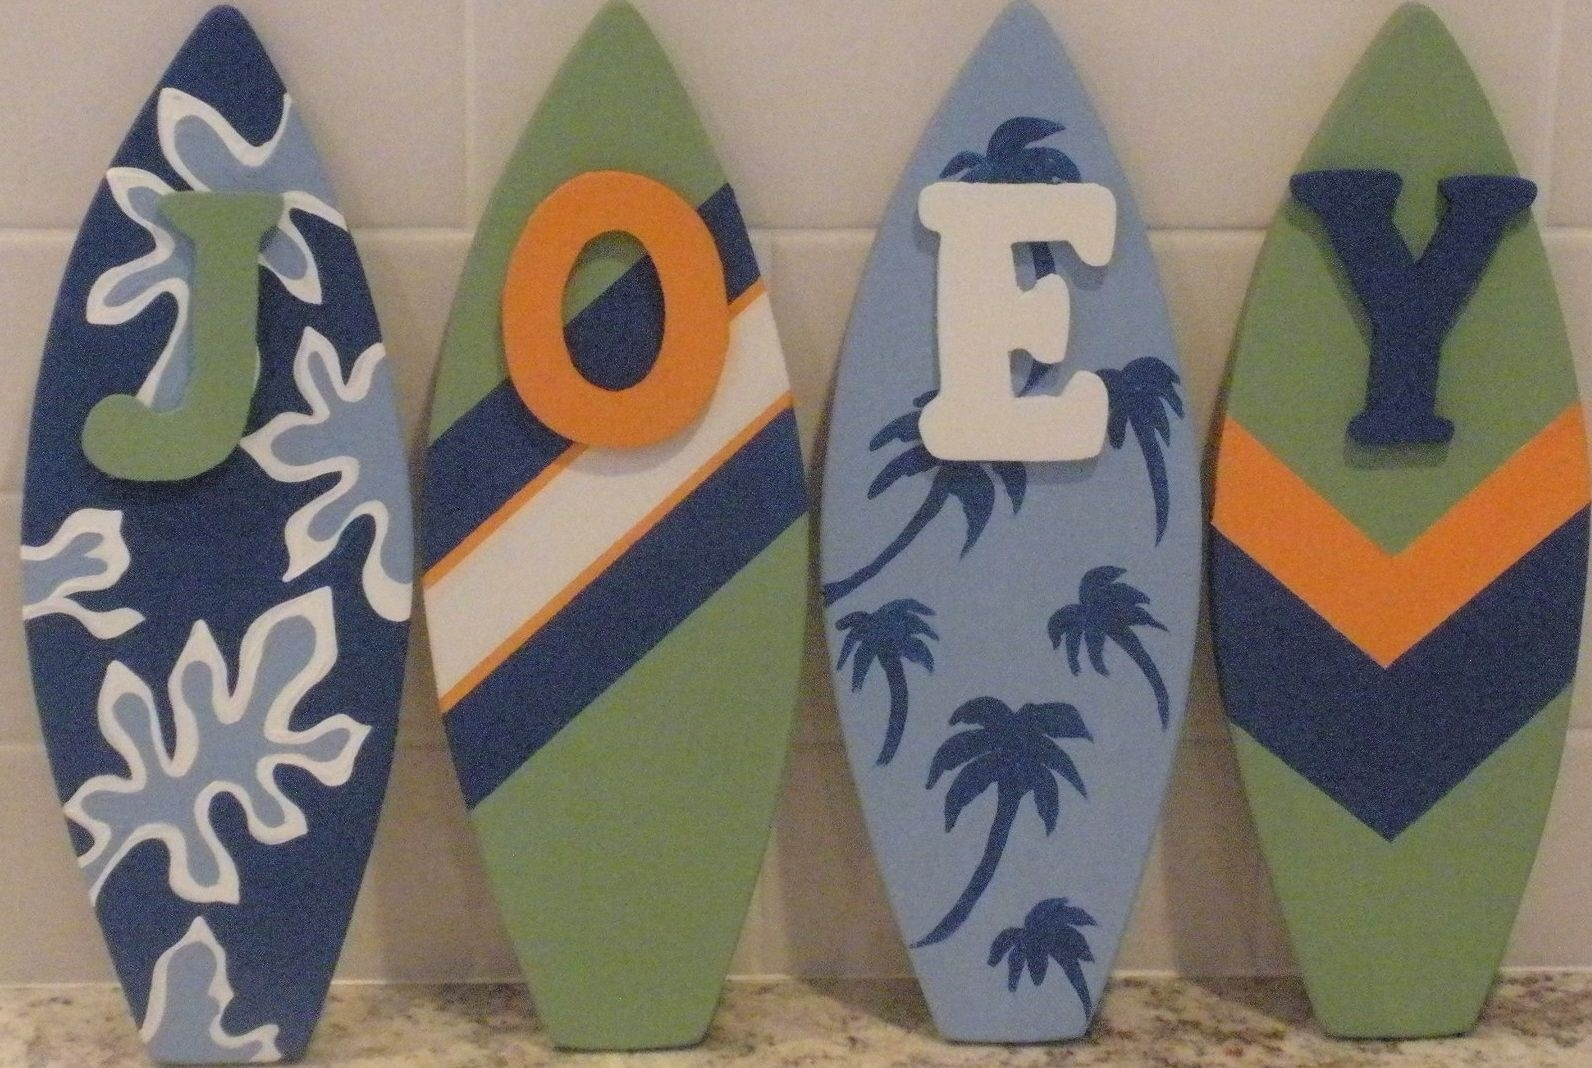 Custom Decorative Surfboard Wall Signs And Decor For Best And Newest Surfboard Wall Art (Gallery 17 of 20)